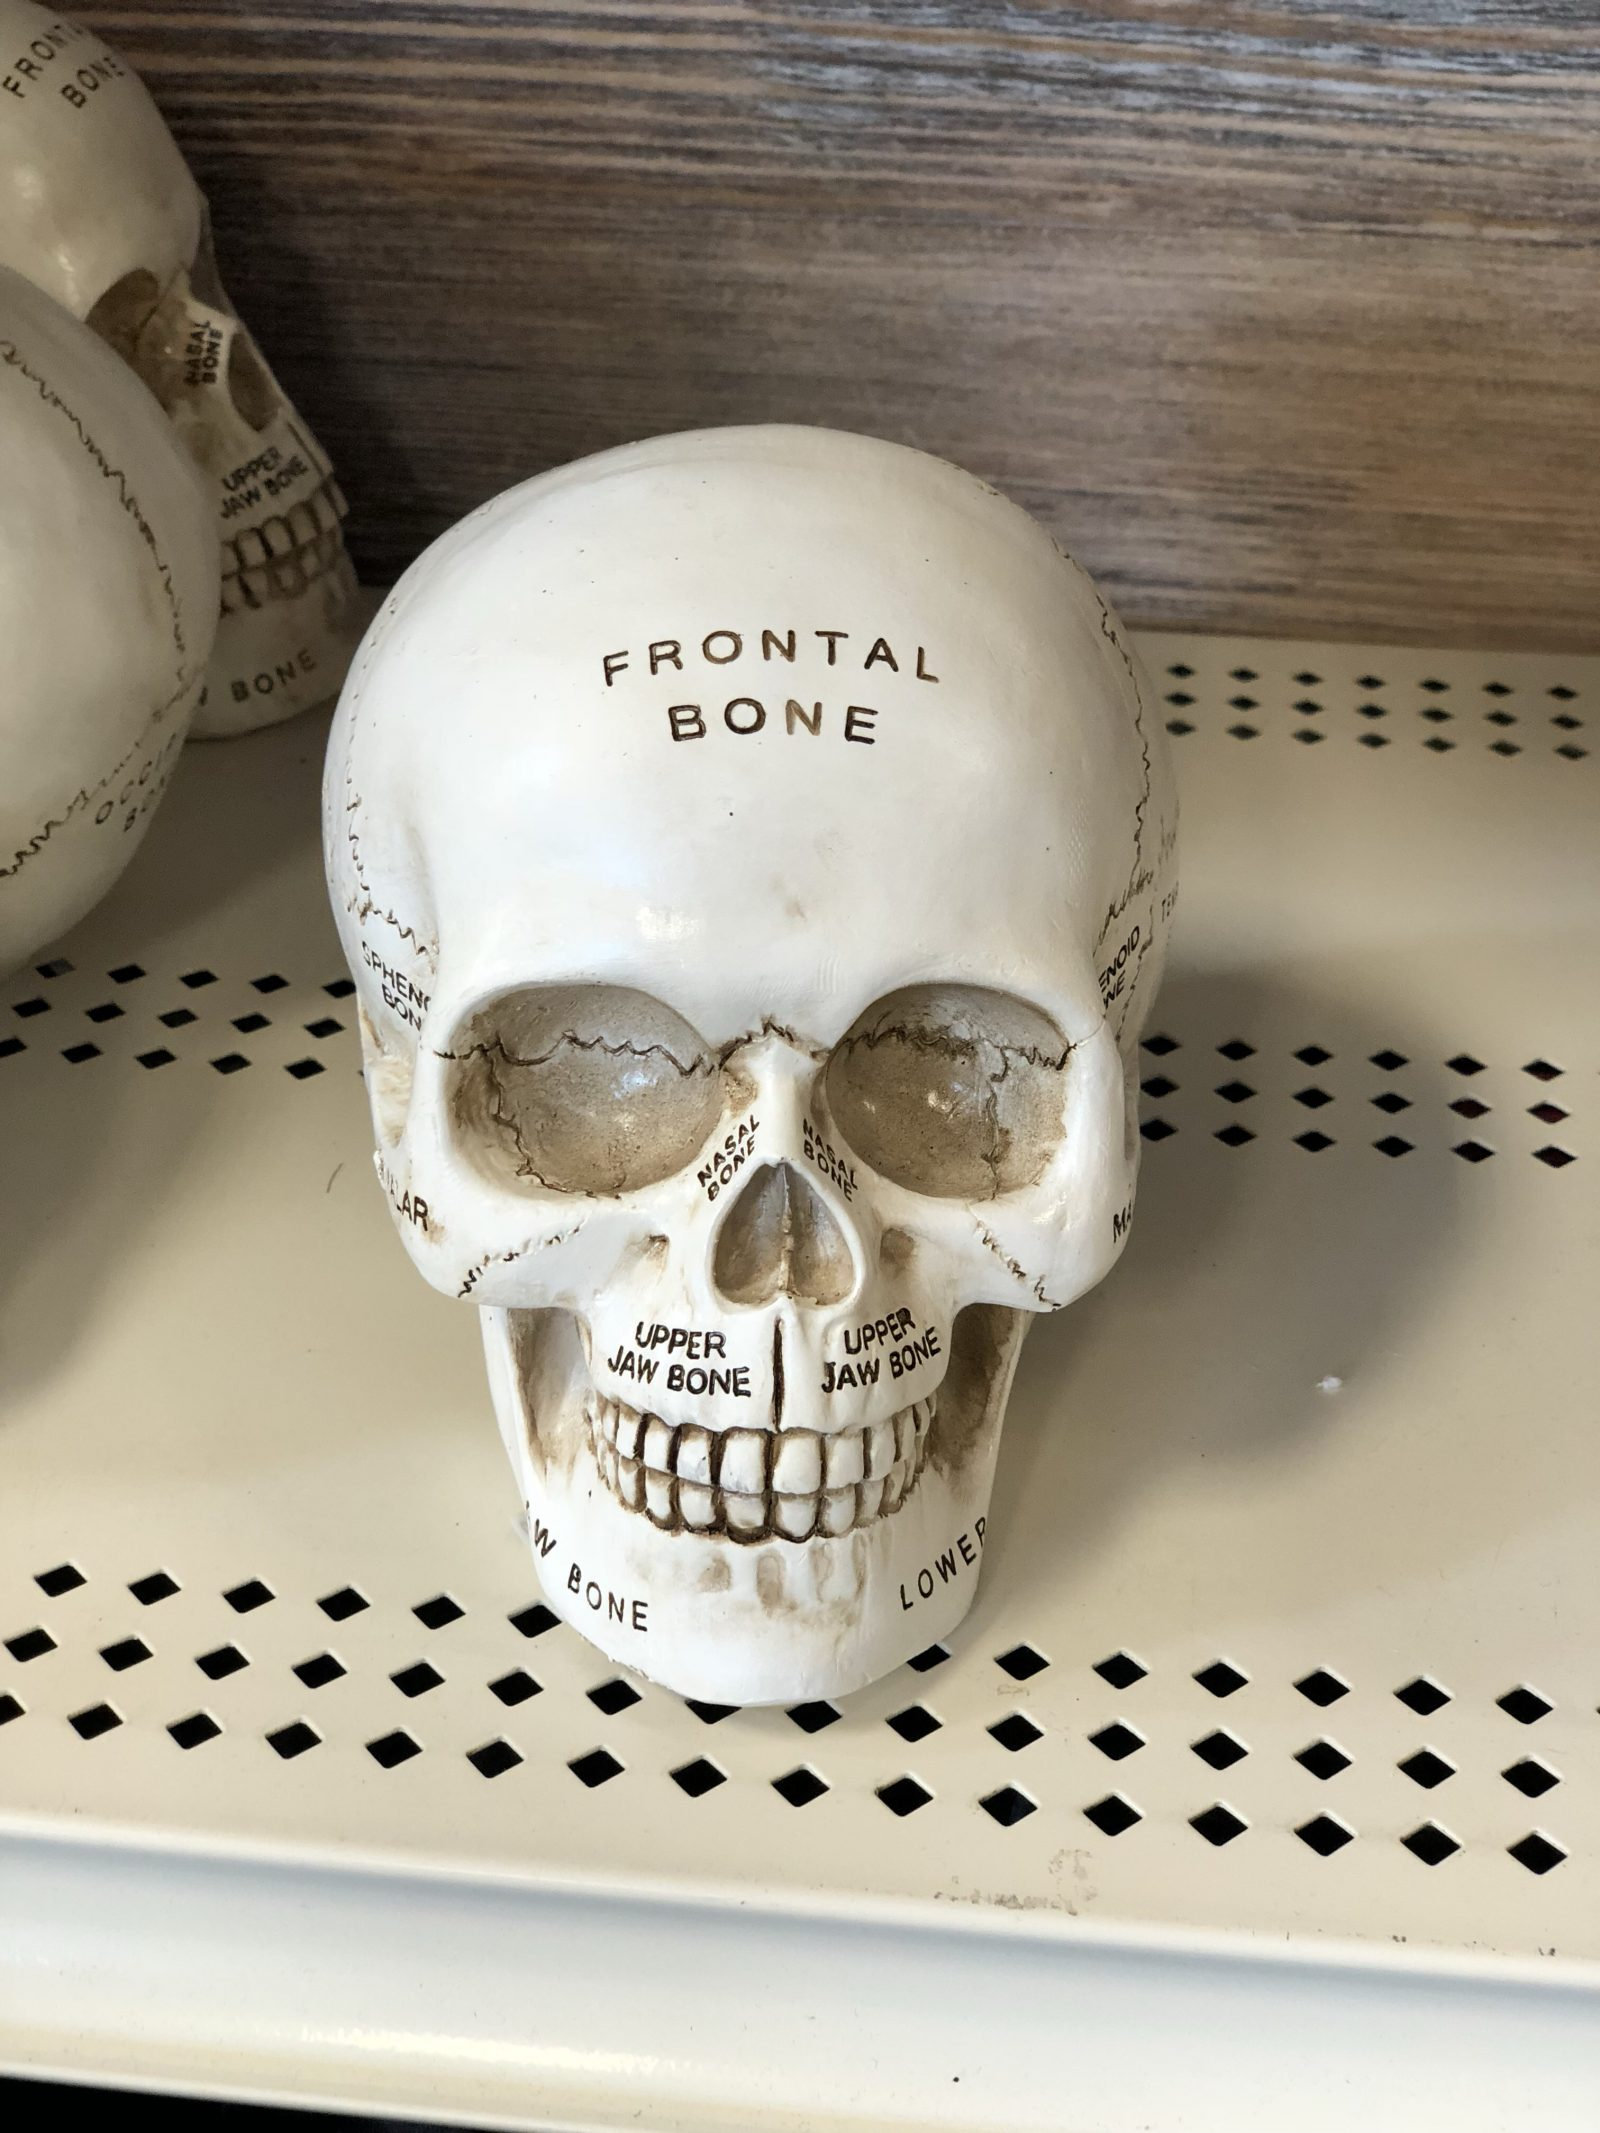 Michaels Halloween Decor - Early Peek at Halloween Decorations